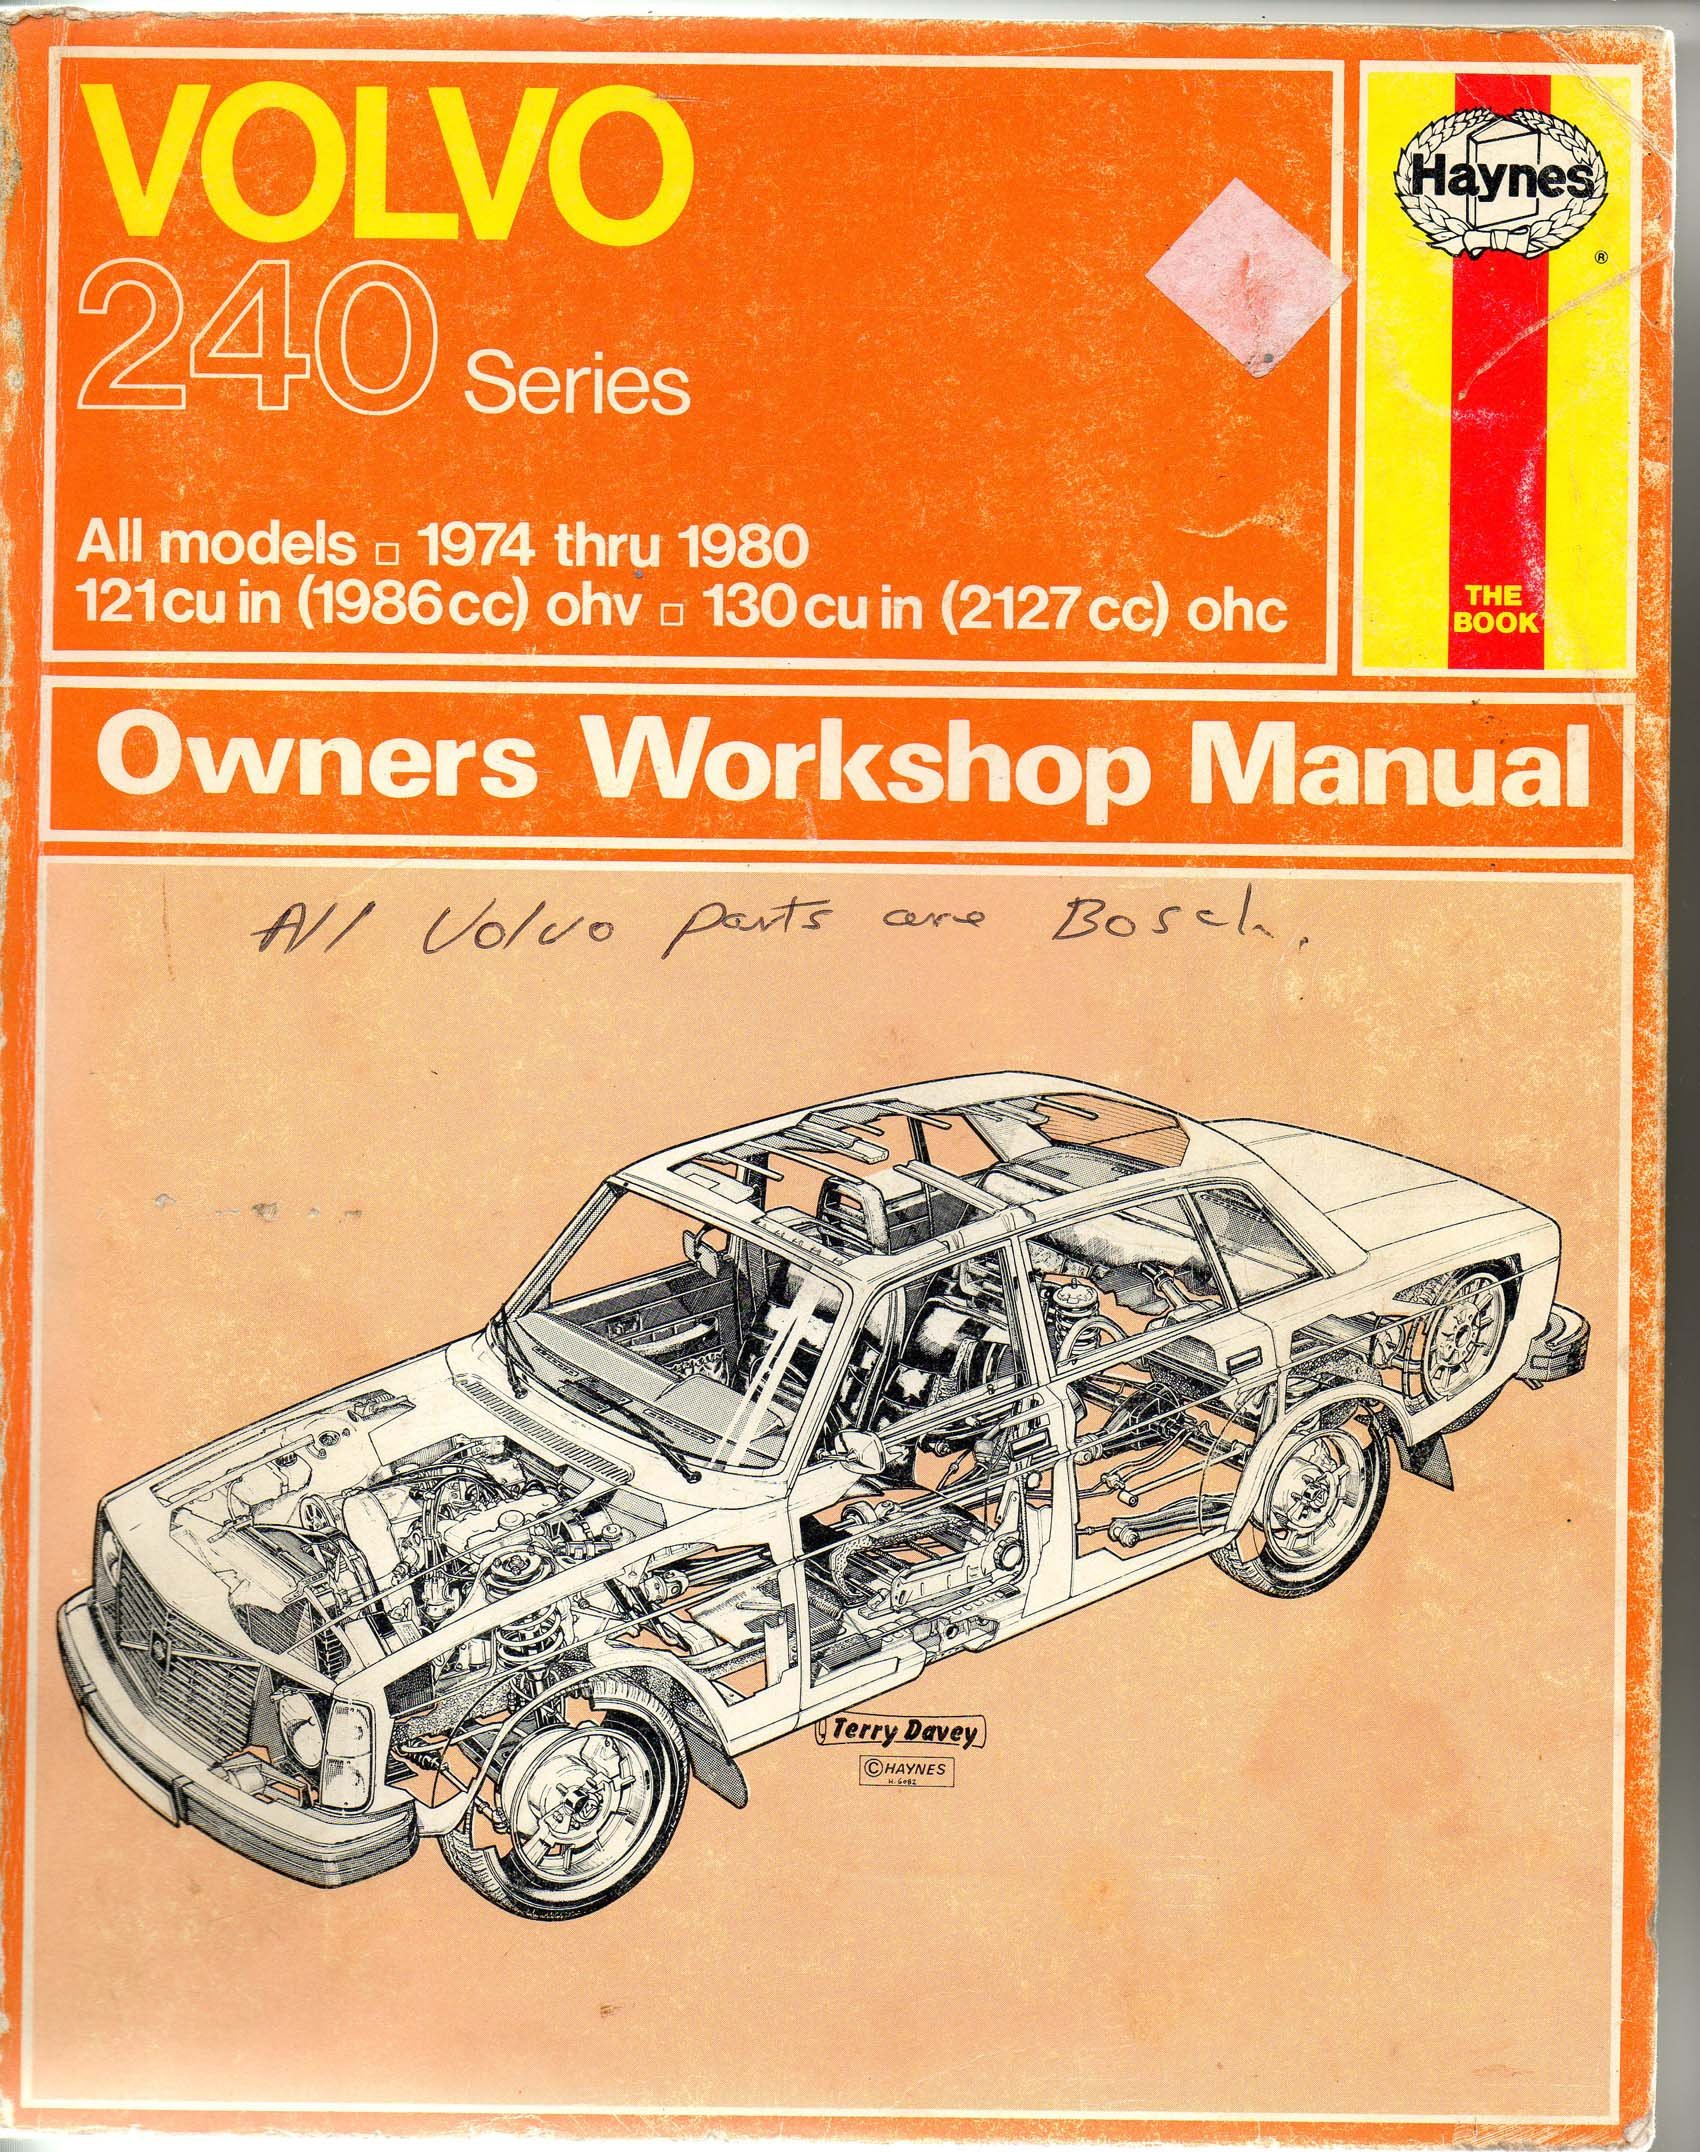 Volvo 240 Series Owners Workshop Manual: J H And Gilmour, Bruce. Haynes:  Amazon.com: Books